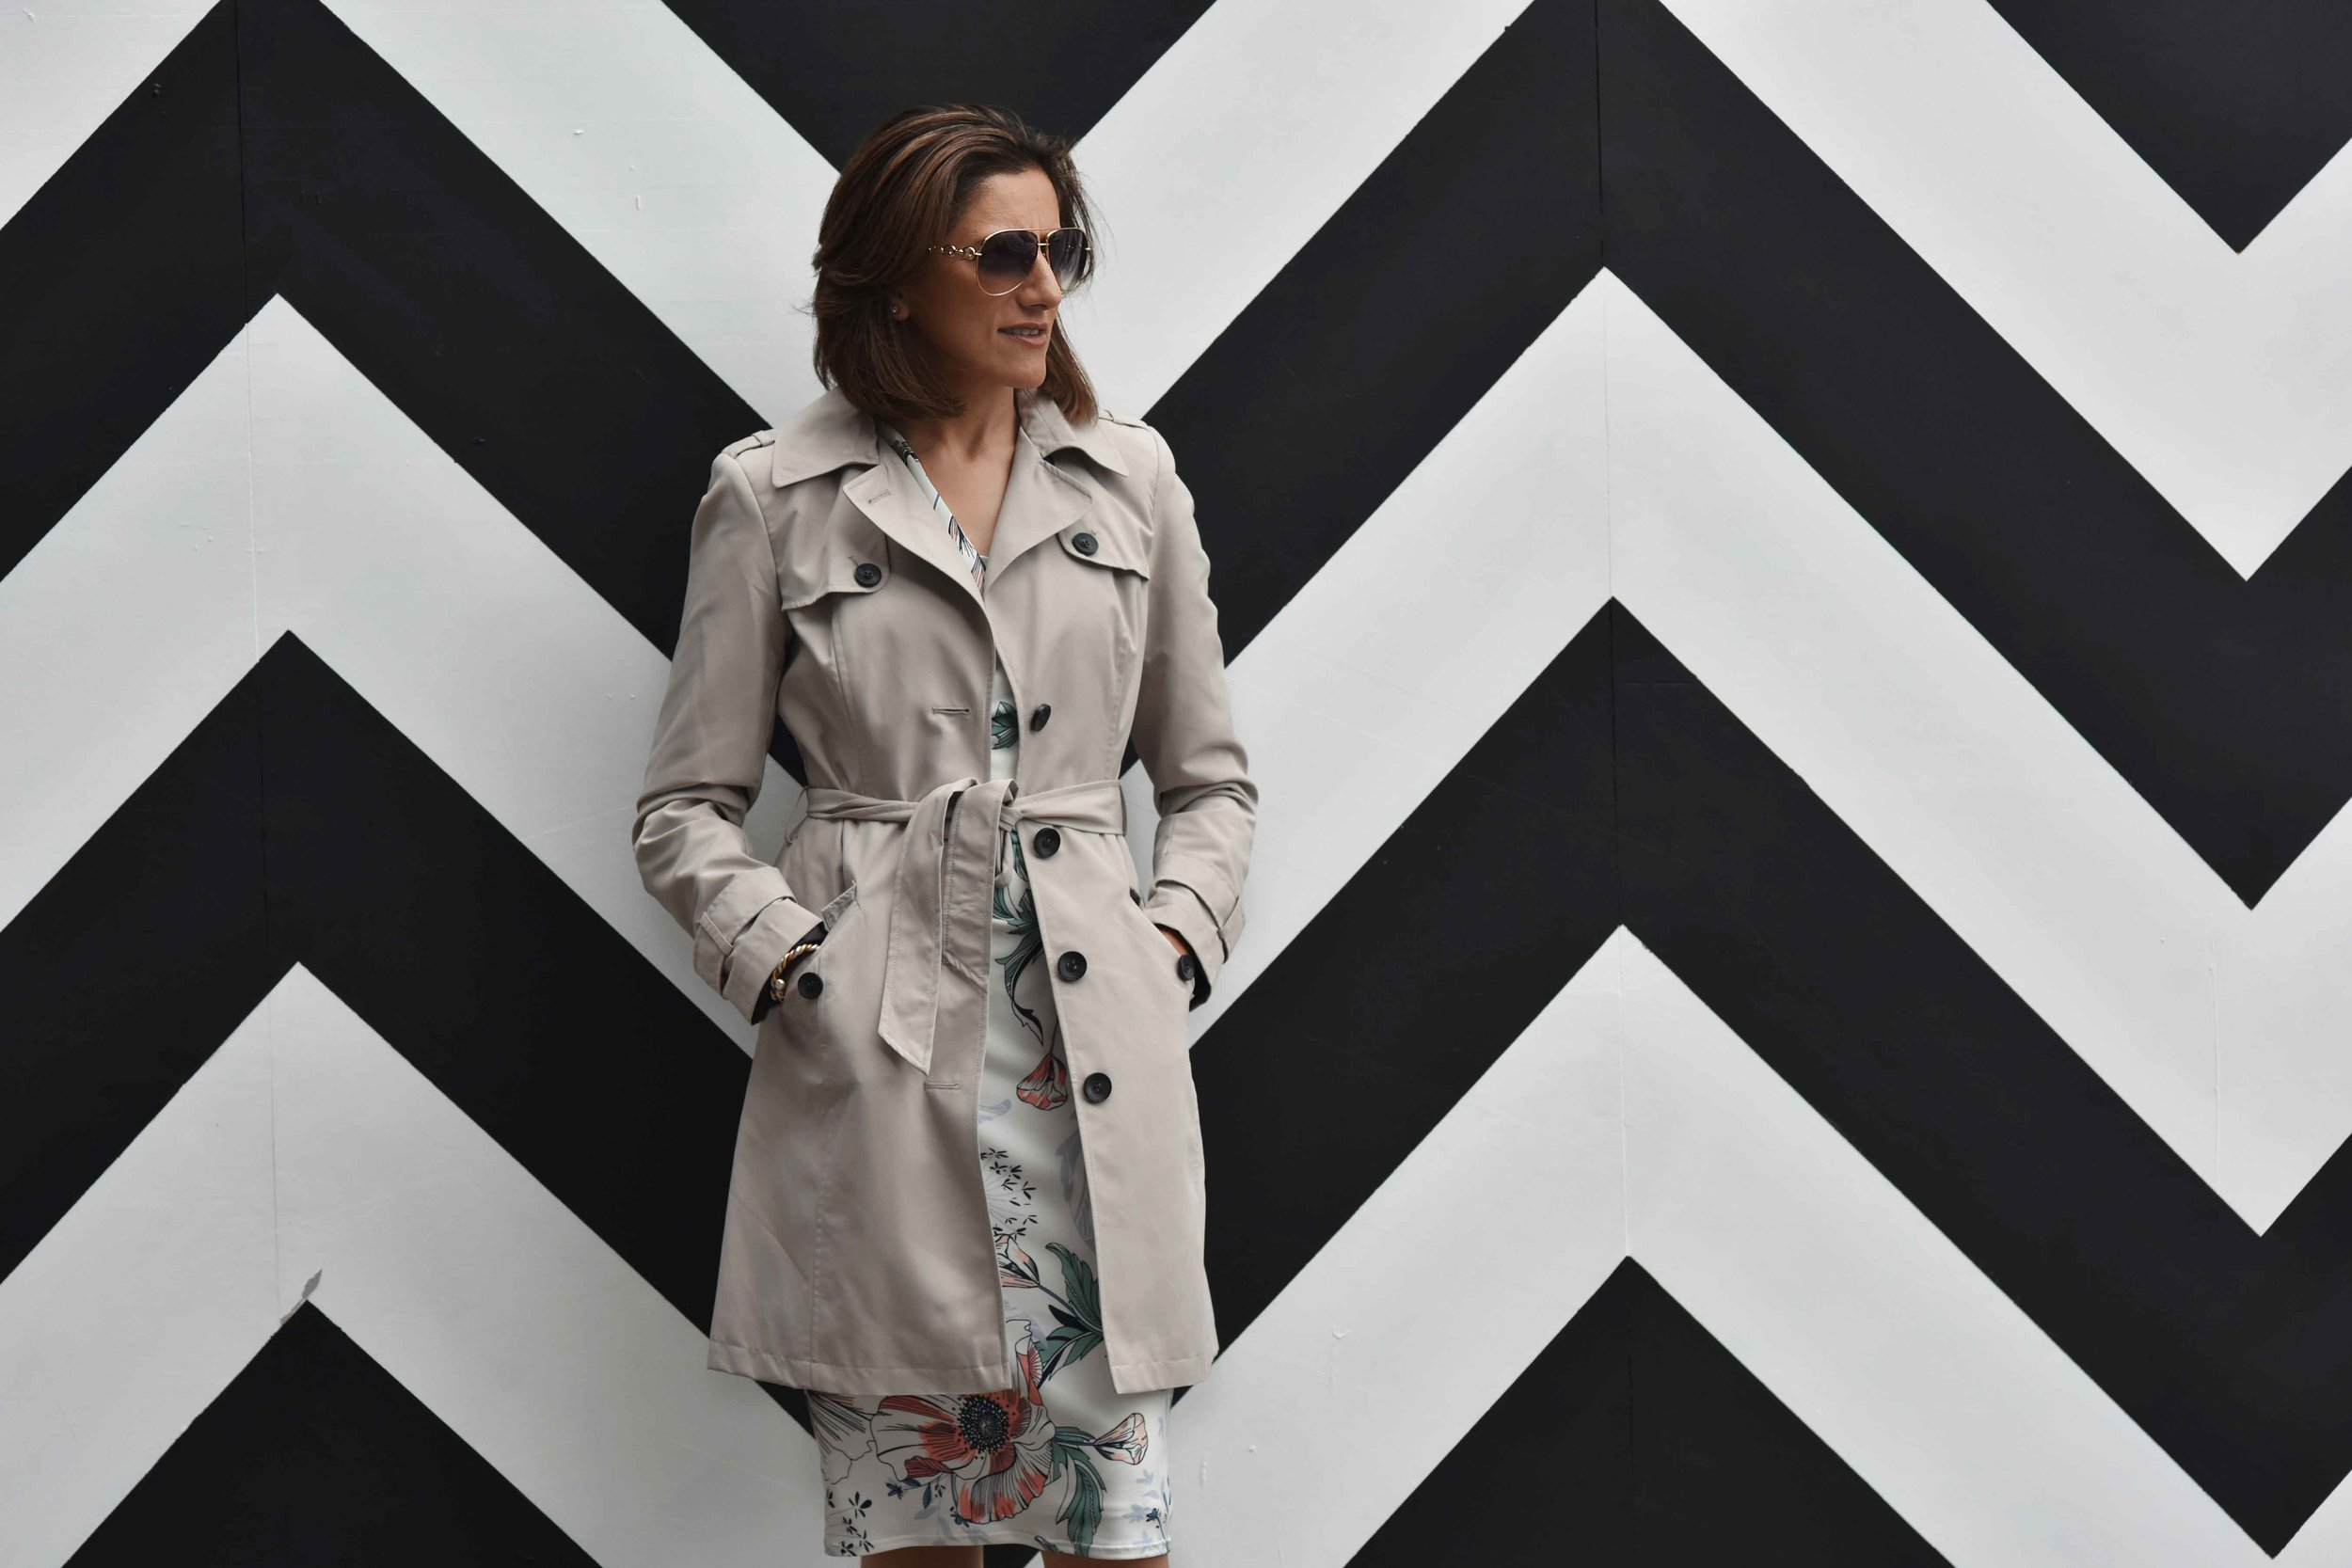 Marks and Spencer shift dress, Marks and Spencer trench, Gucci sunglasses, Shoreditch, London, U.K. Photo: Nina Shaw, Image©sourcingstyle.com